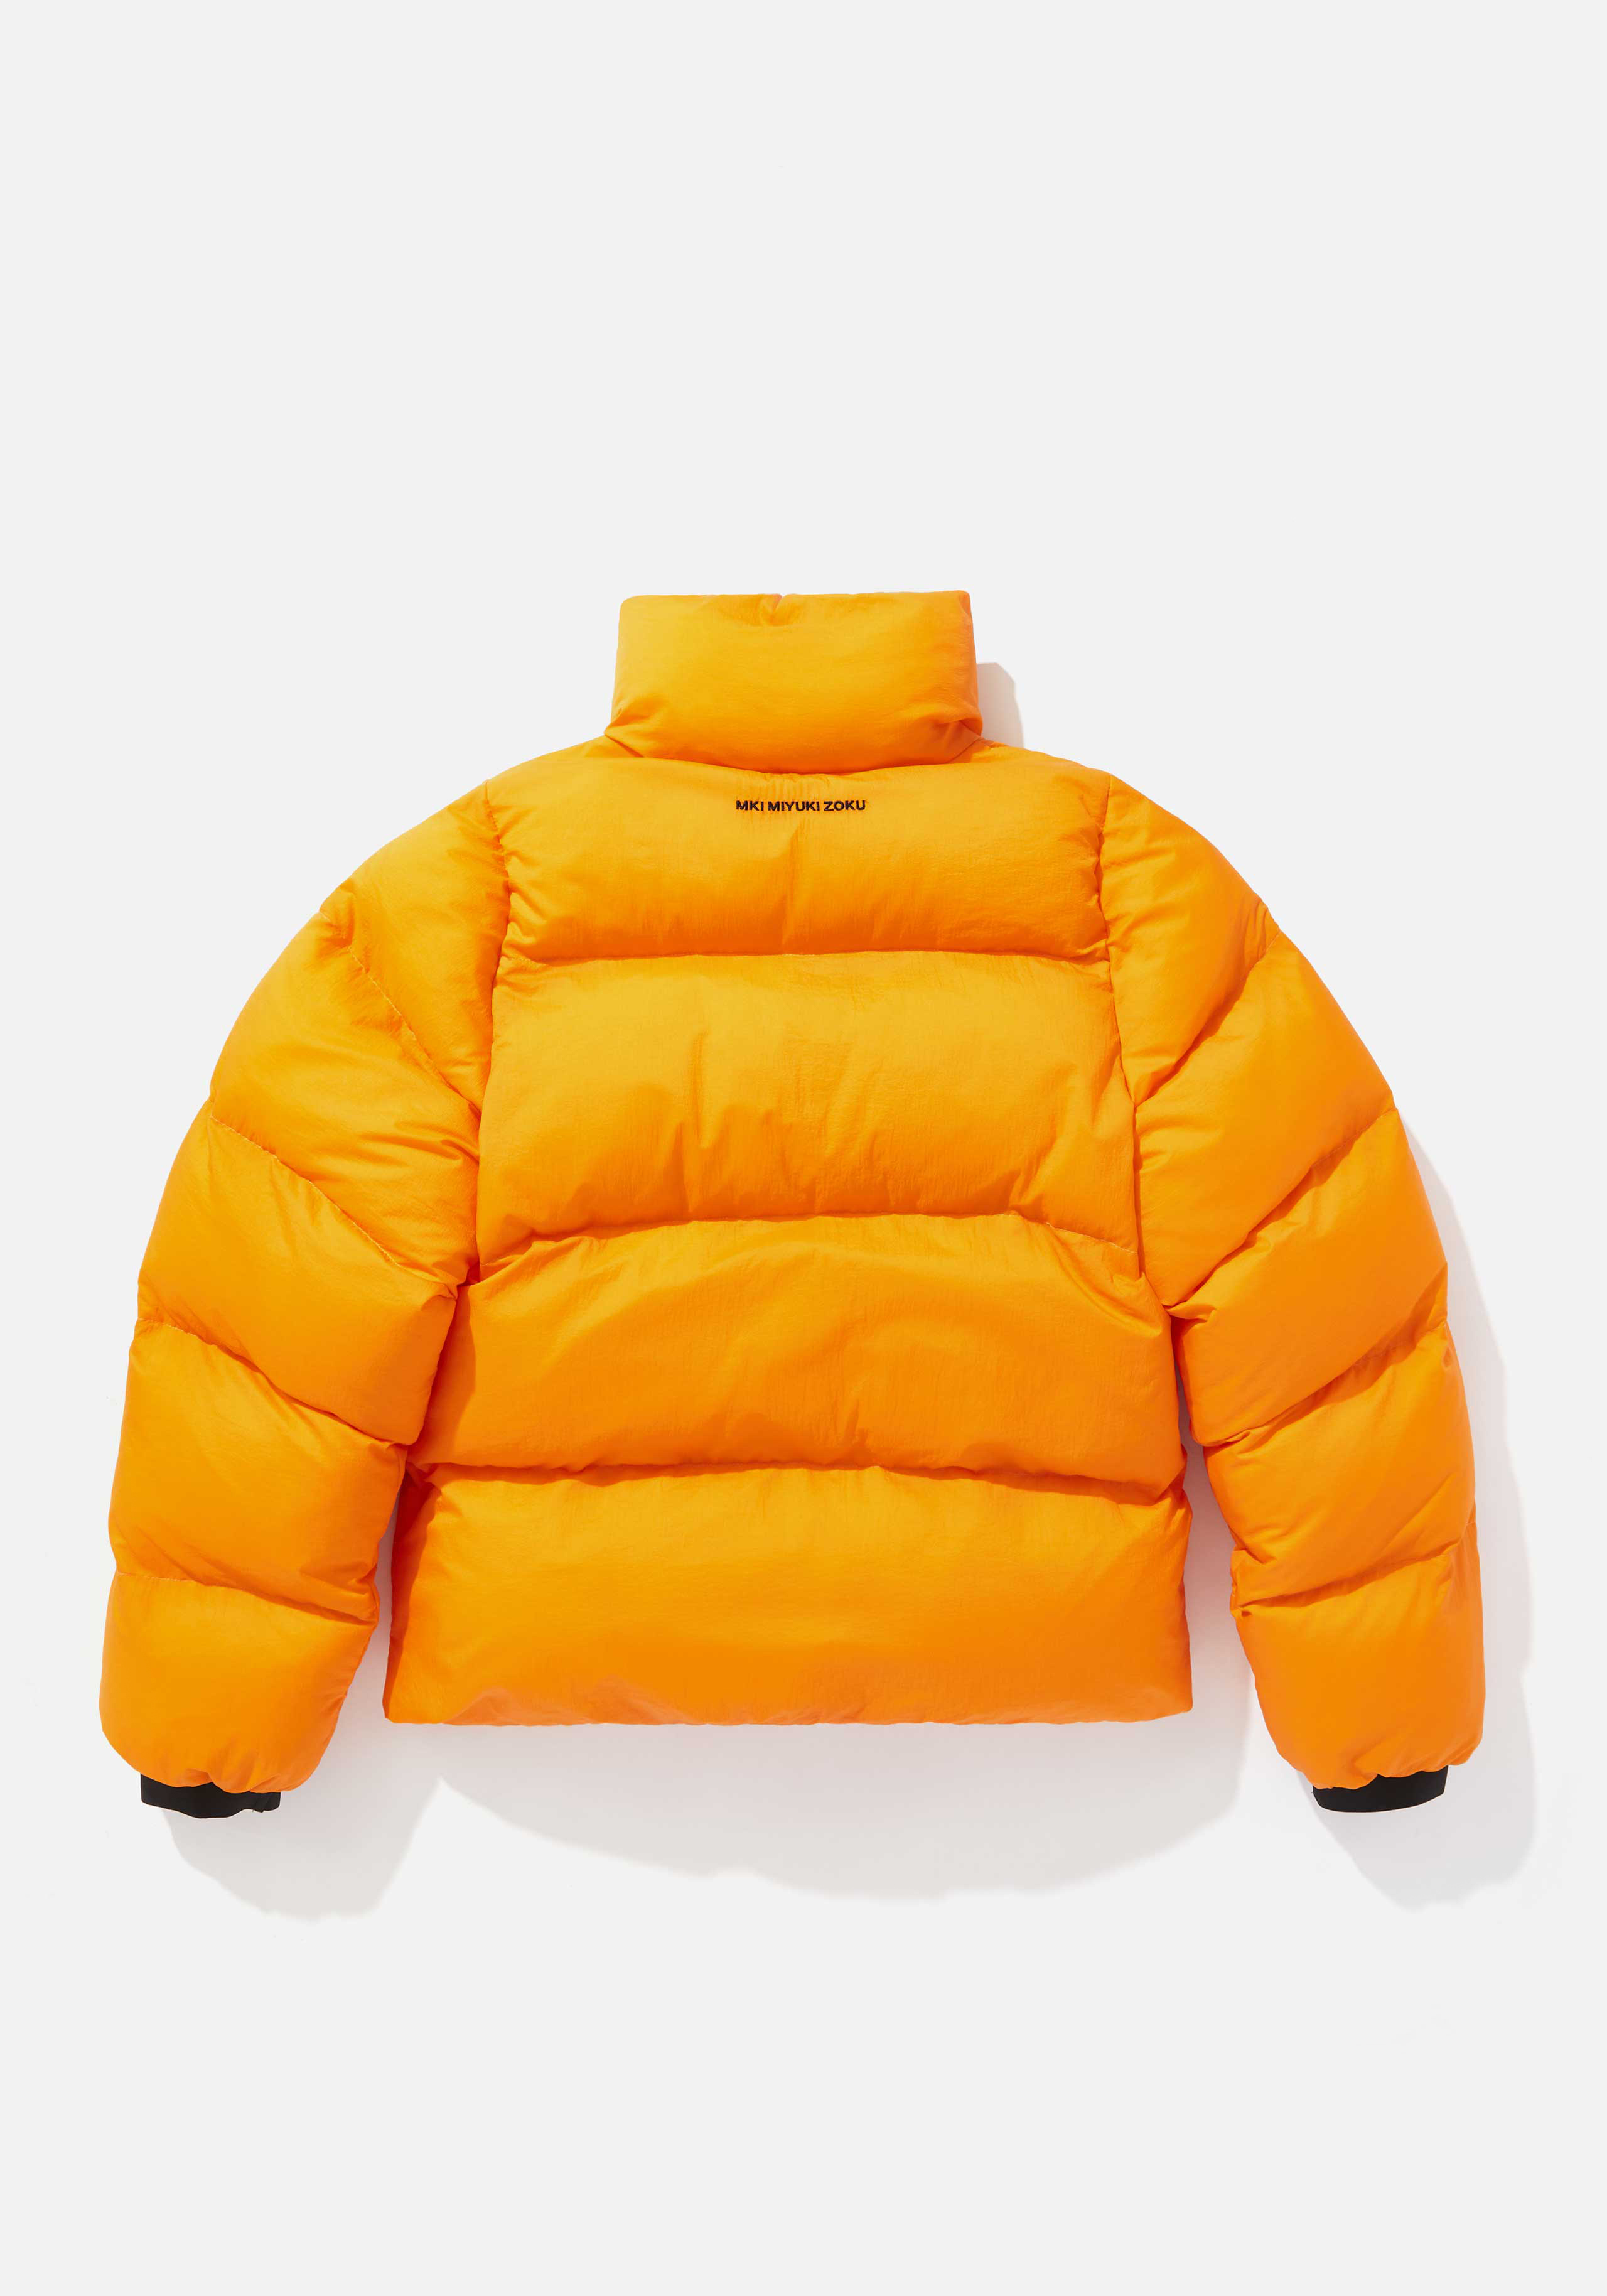 mki bubble jacket 2